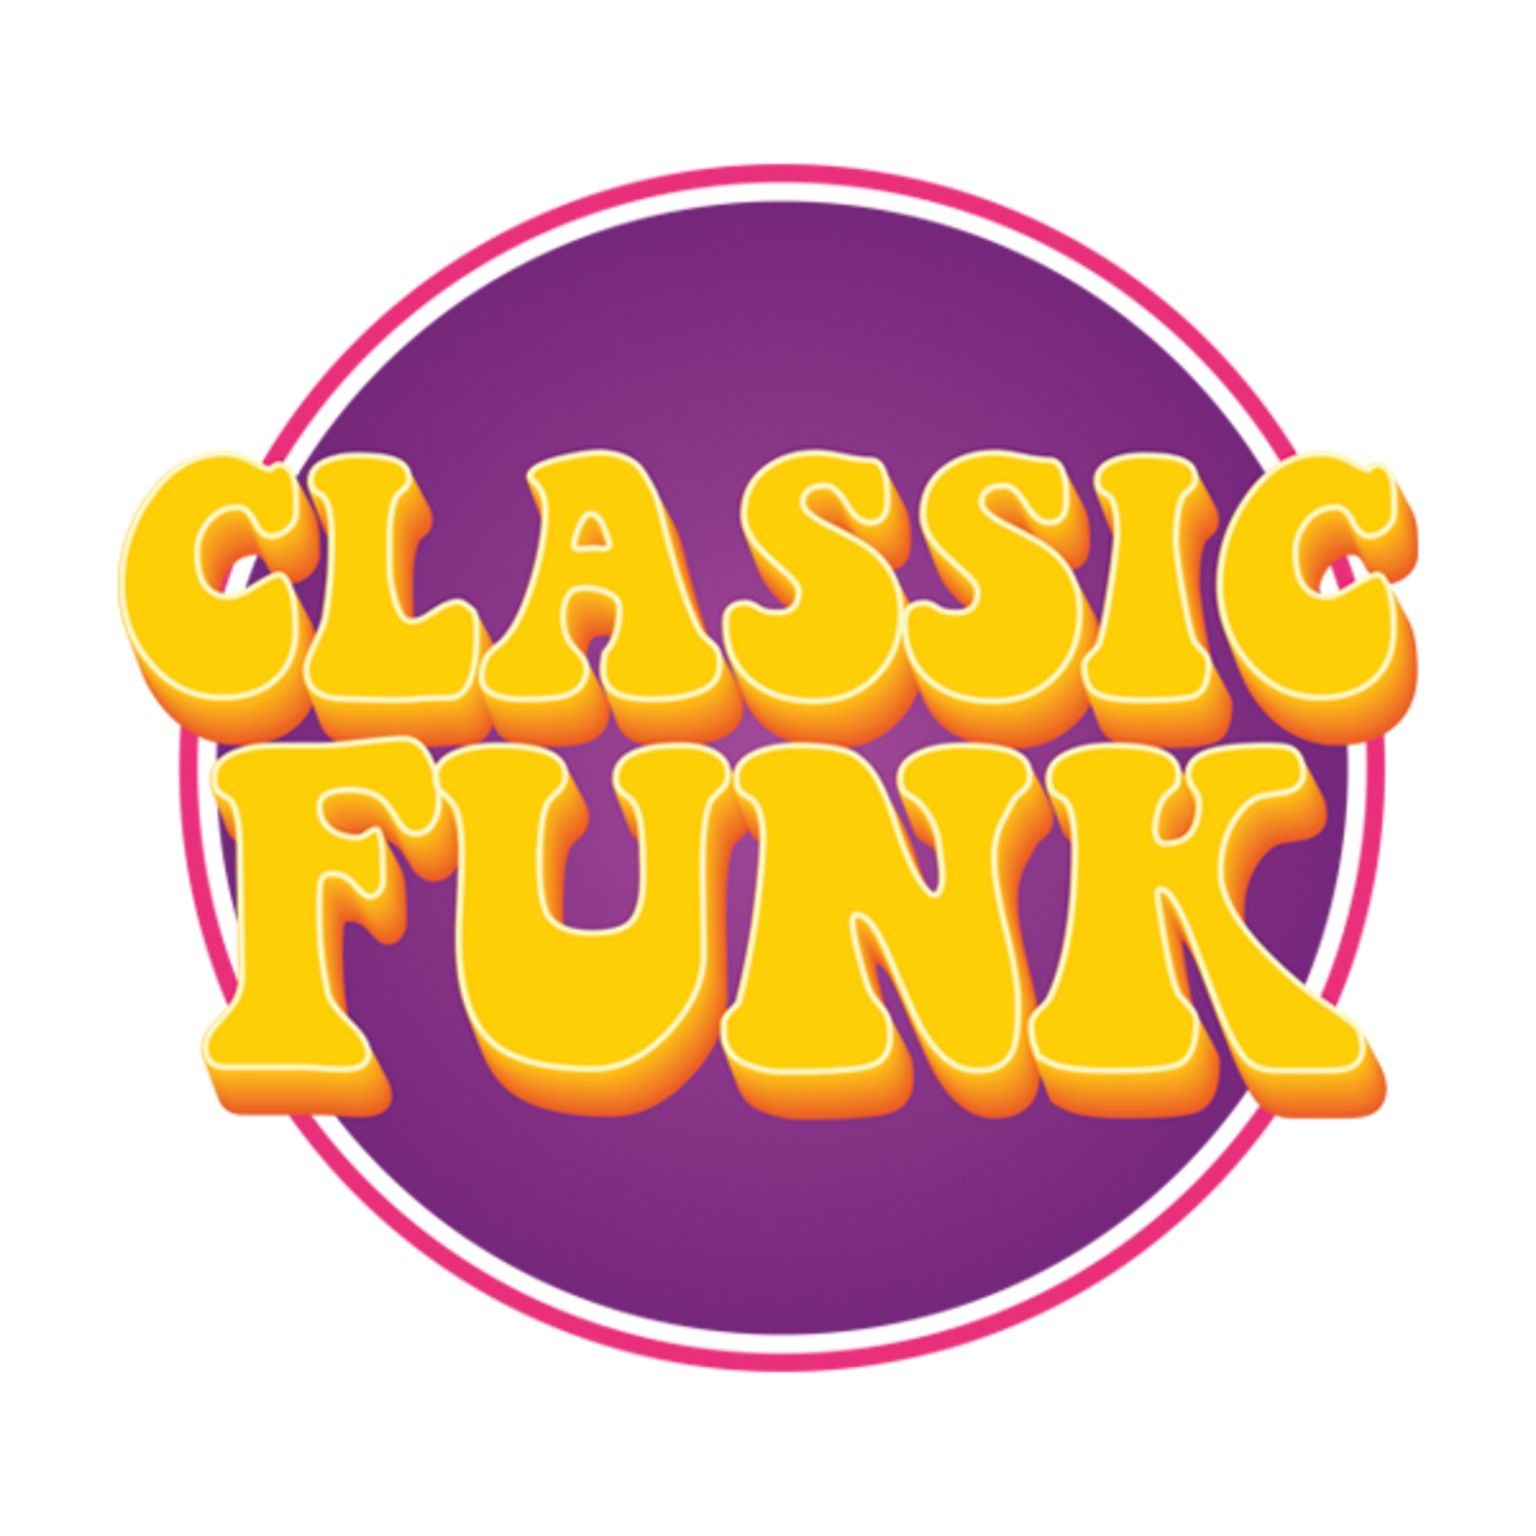 I'm listening to Classic Funk, R&B Favorites from the 70s